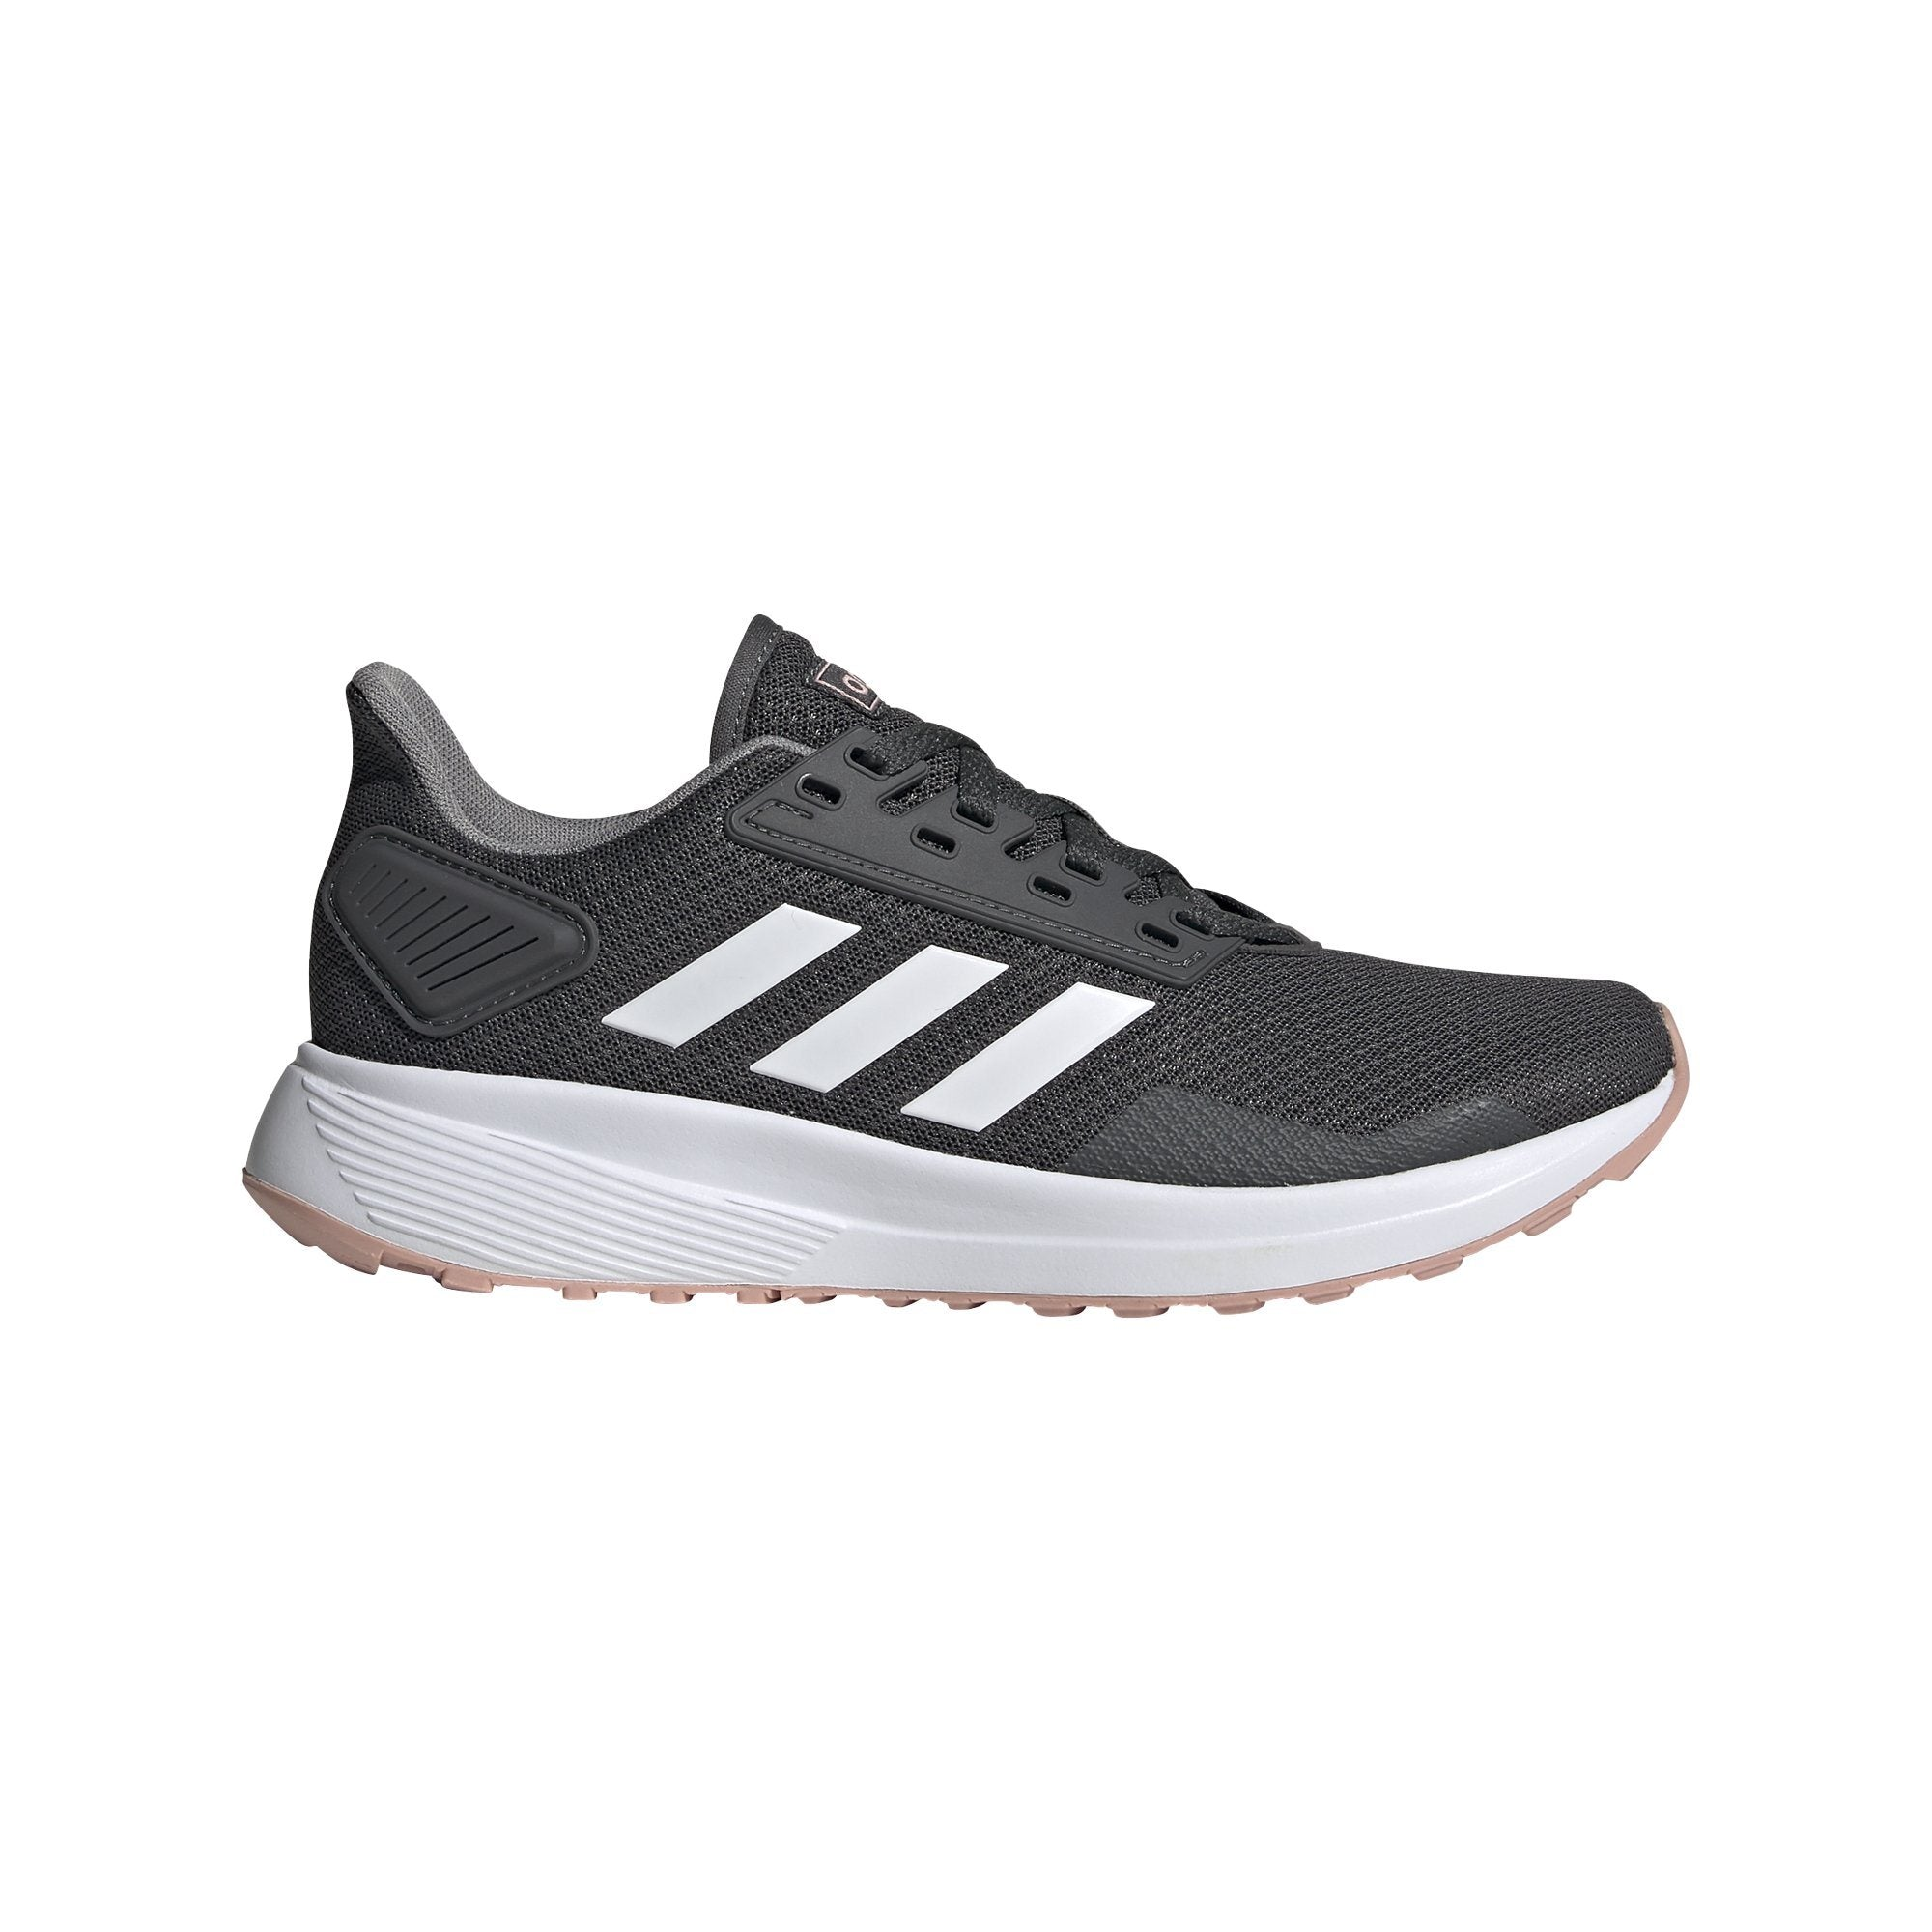 Adidas Womens Duramo 9 Shoes - Grey Six/Ftwr White/Pink Spirit SP-Footwear-Womens Adidas